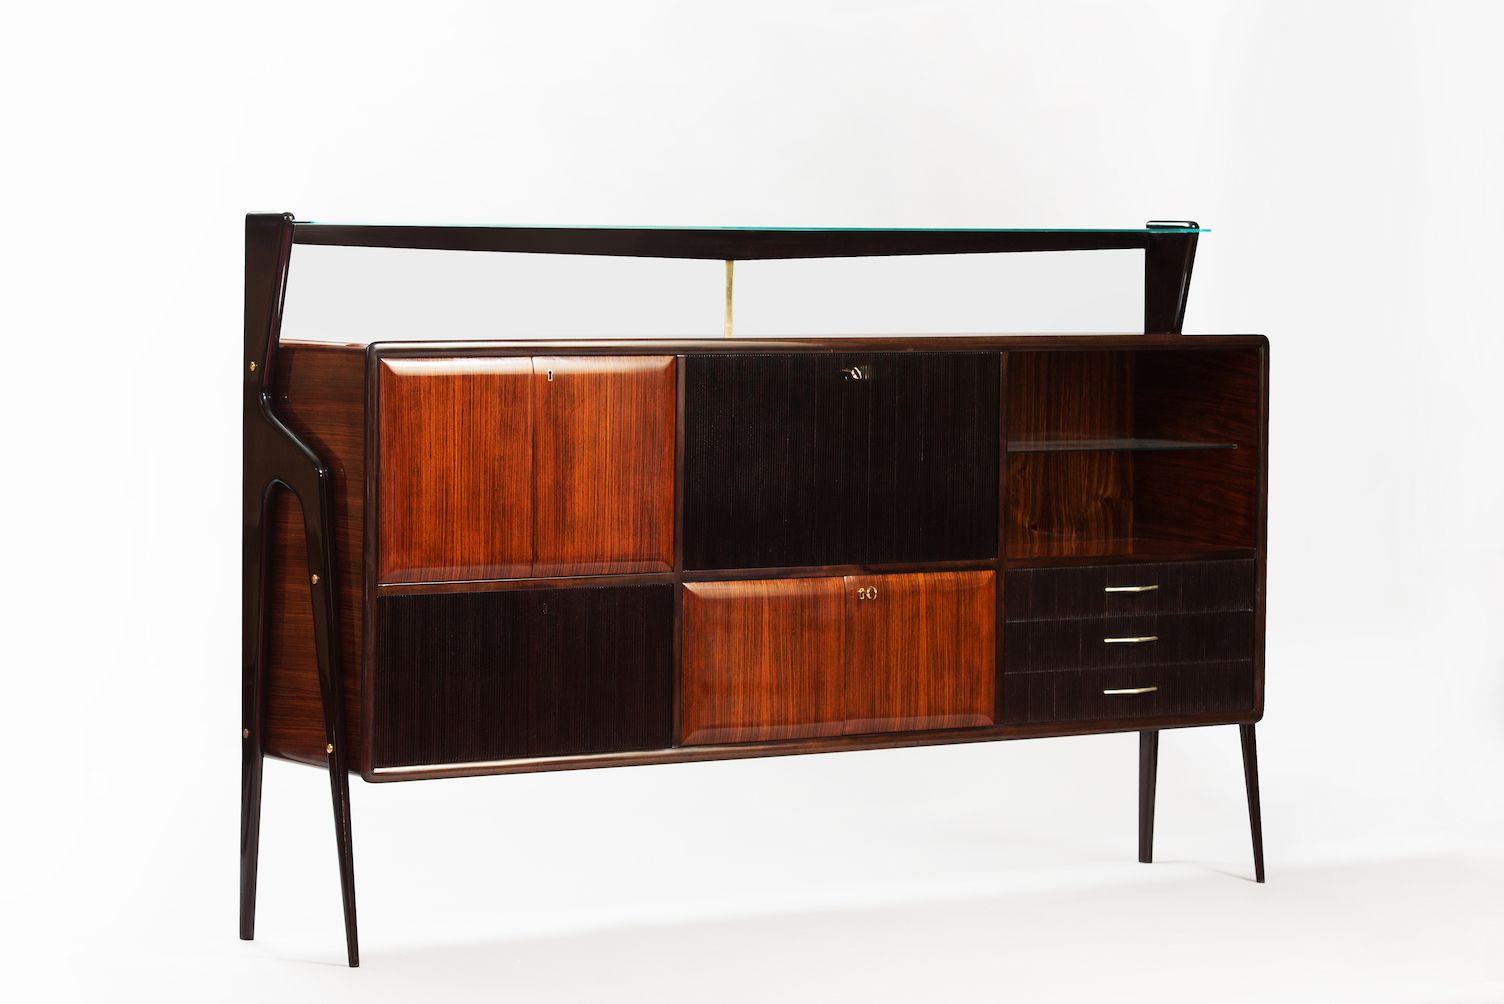 italienisches mid century sideboard mit bar bei pamono kaufen. Black Bedroom Furniture Sets. Home Design Ideas